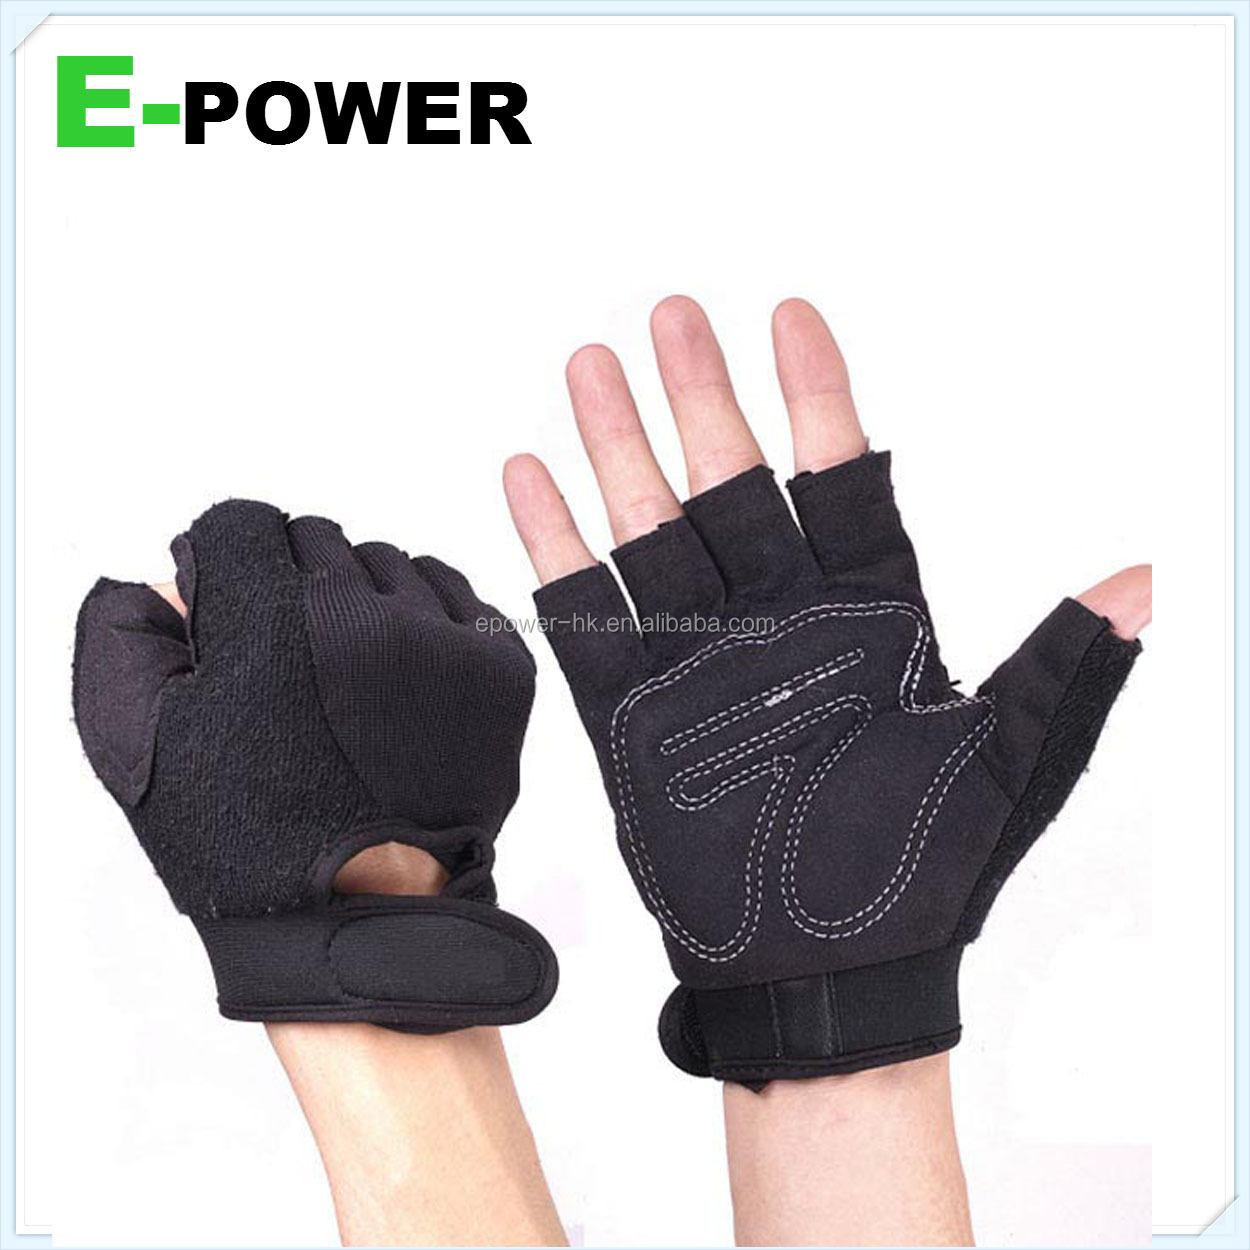 Leather motorcycle skeleton gloves - Leather Skeleton Gloves Weight Lifting Gloves Gym Leather Skeleton Gloves Weight Lifting Gloves Gym Suppliers And Manufacturers At Alibaba Com